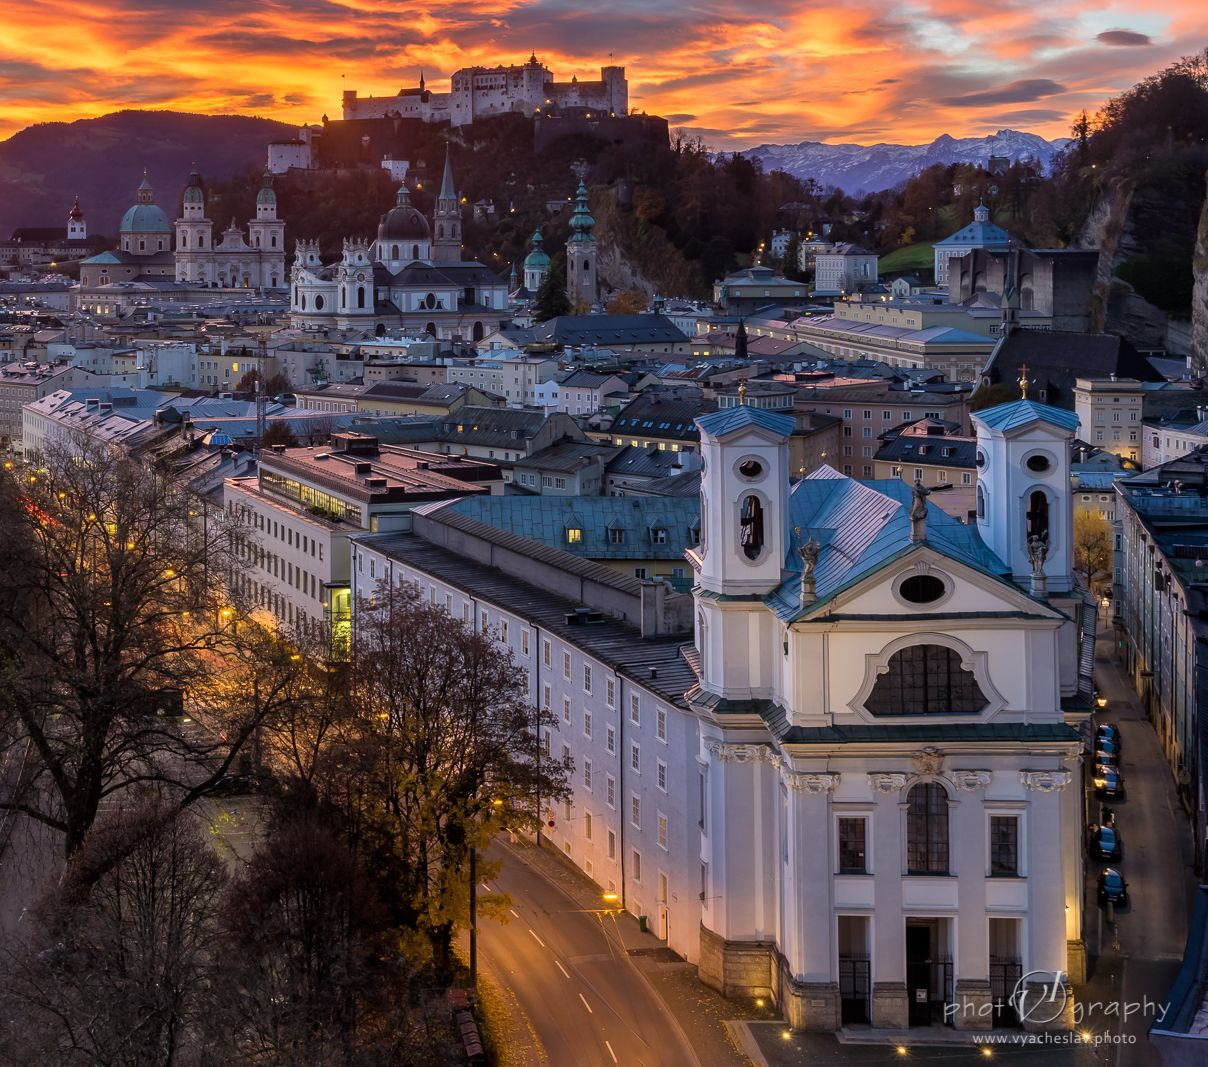 Sunrise at Salzburg